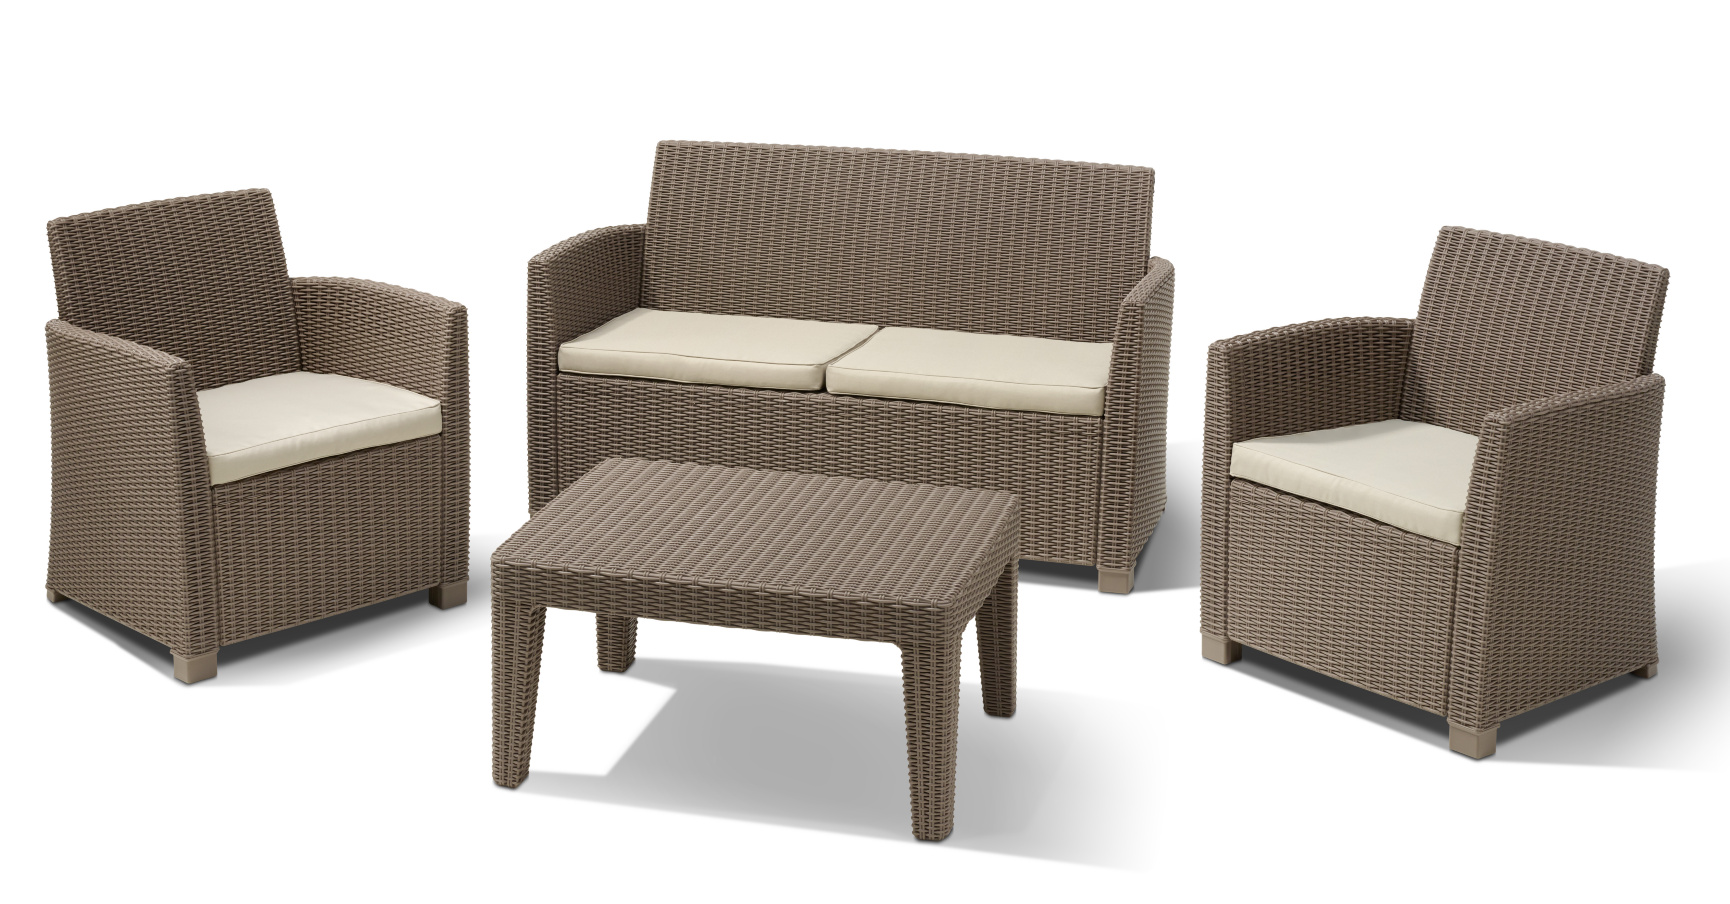 Lounge sofa garten  Loungeset | Lounge sets - Allibert